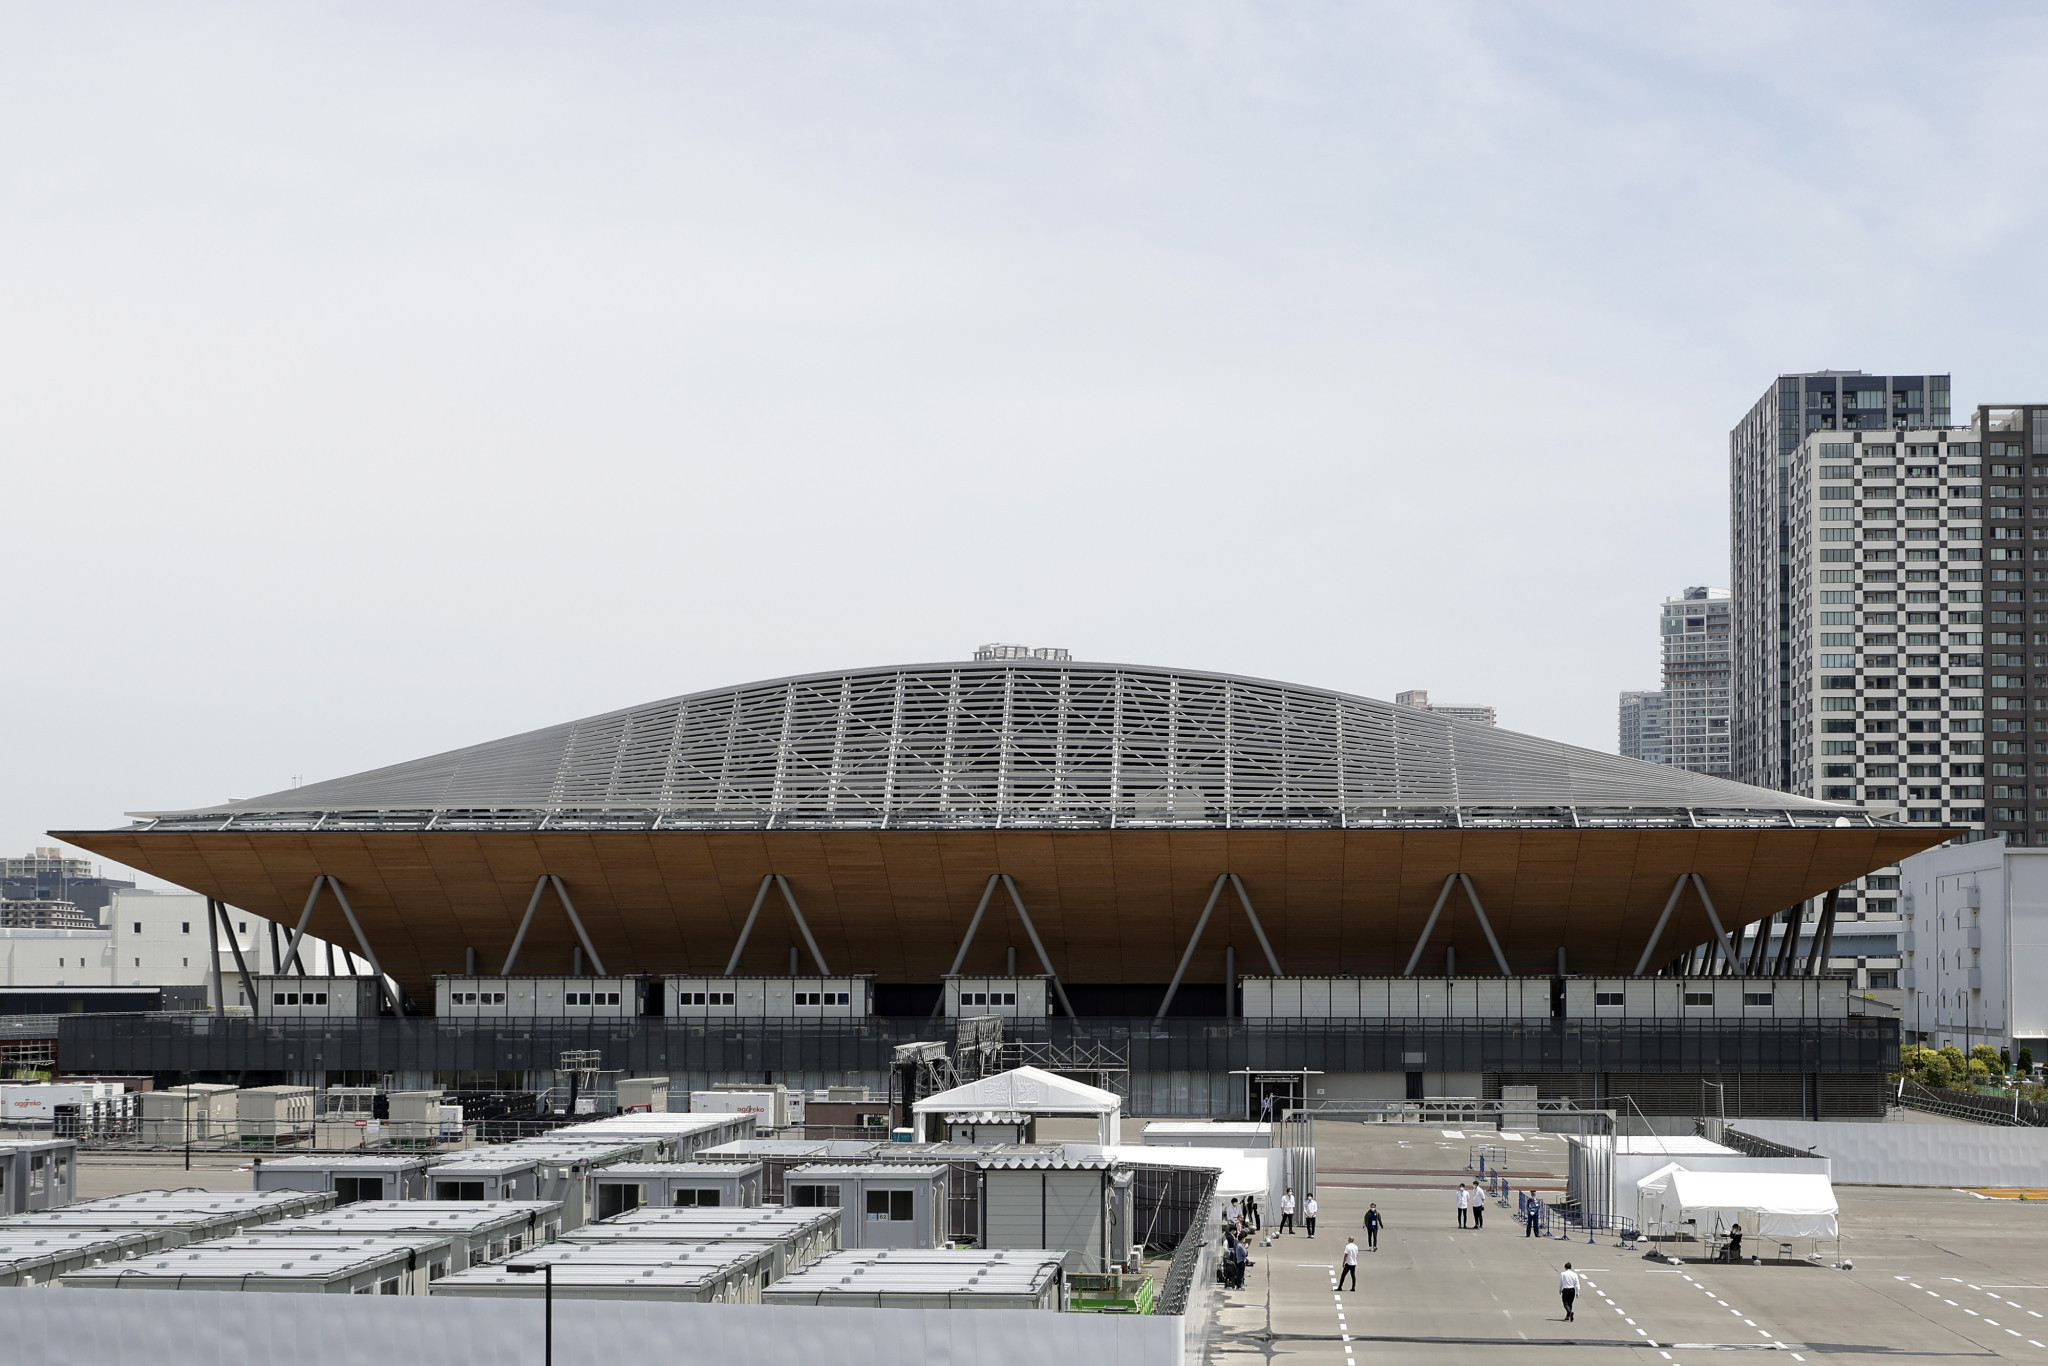 Boccia will be played at the Ariake Gymnastics Centre at Tokyo 2020 ©Getty Images